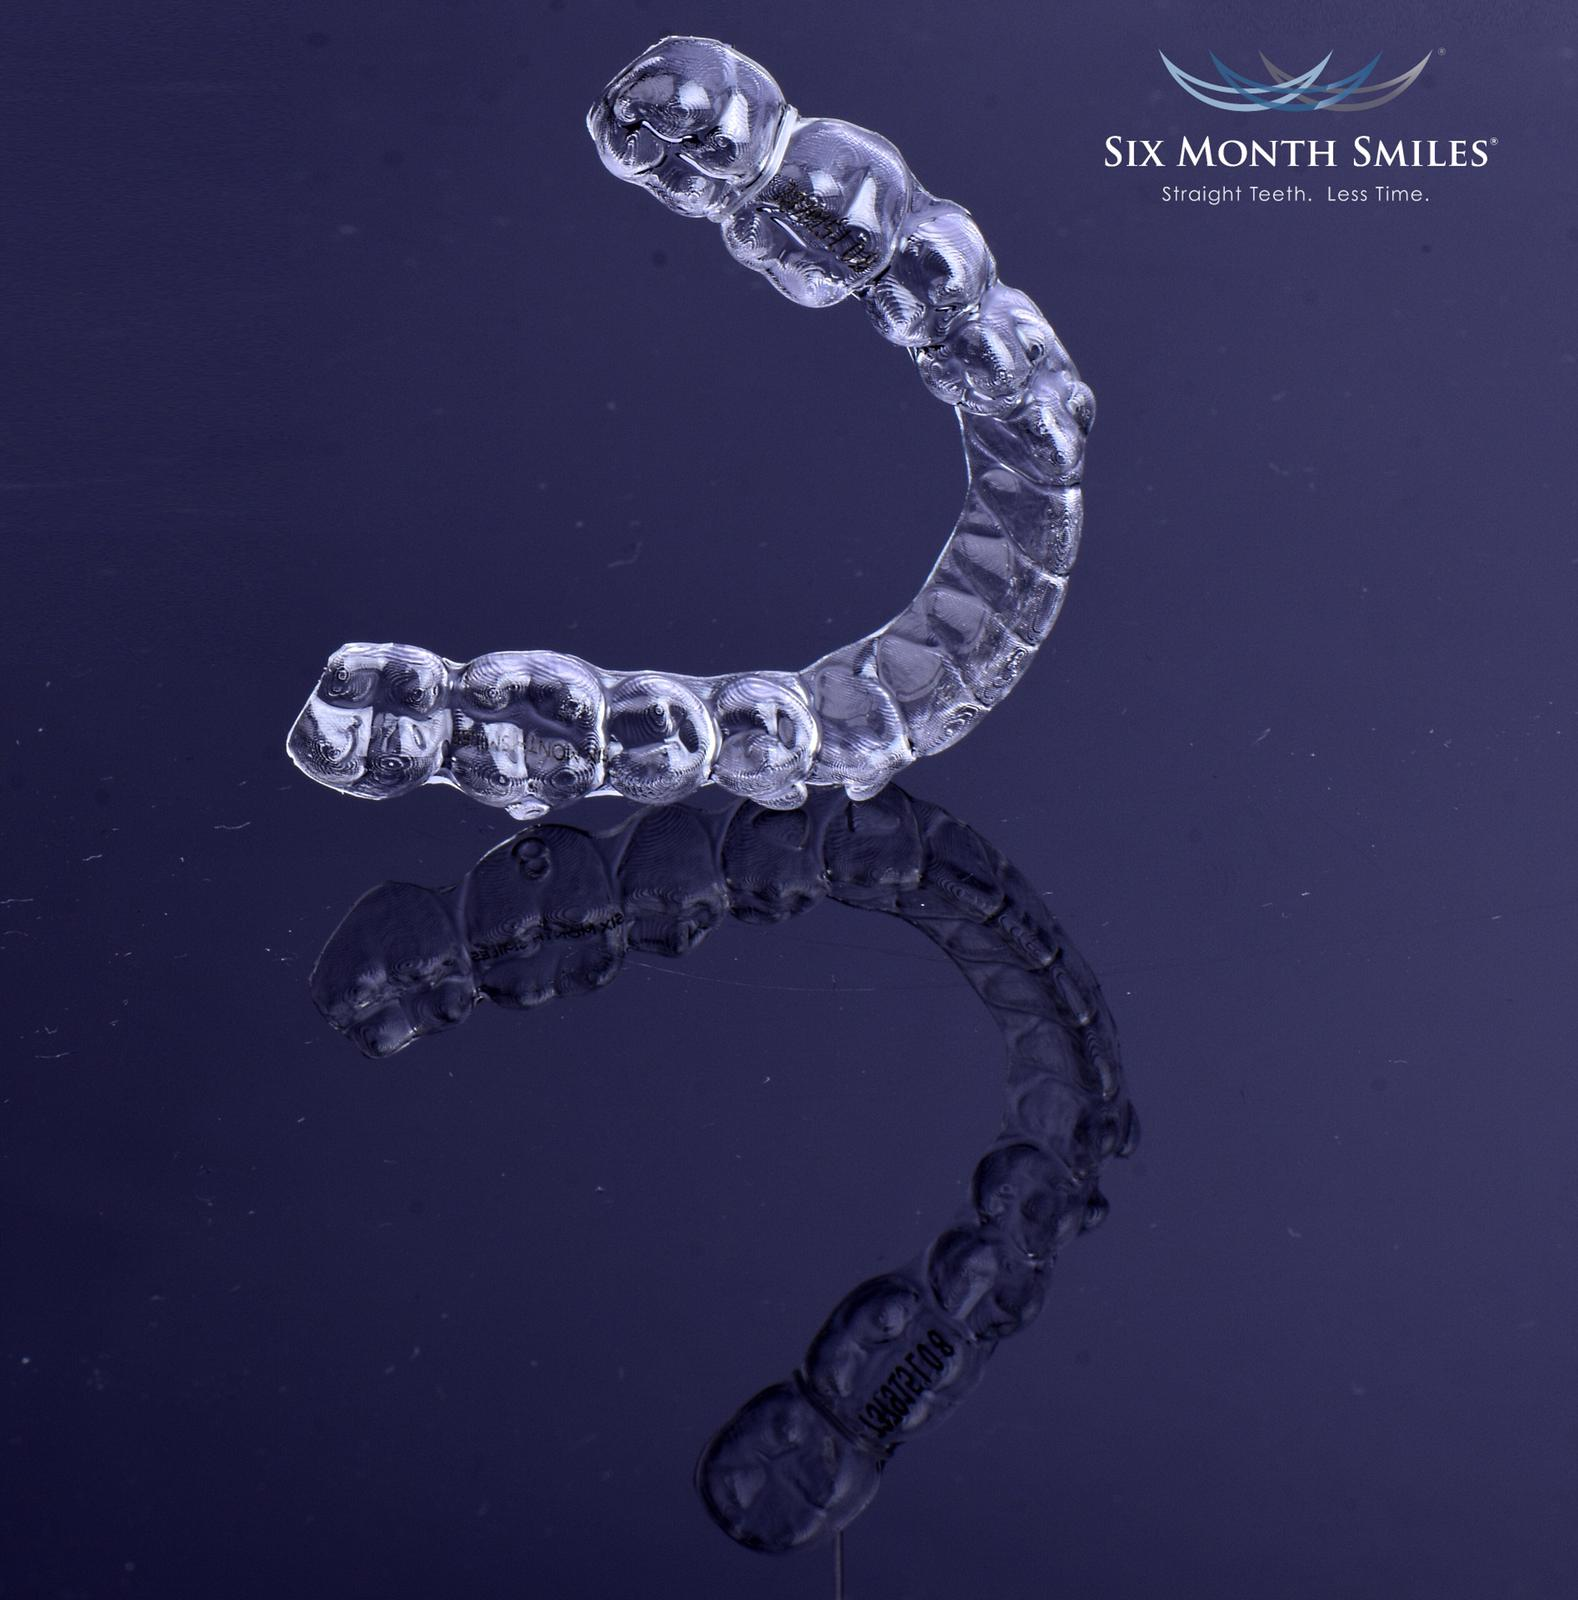 5 Things You Wanted to Know About 6MS Aligners, But Were Afraid to Ask